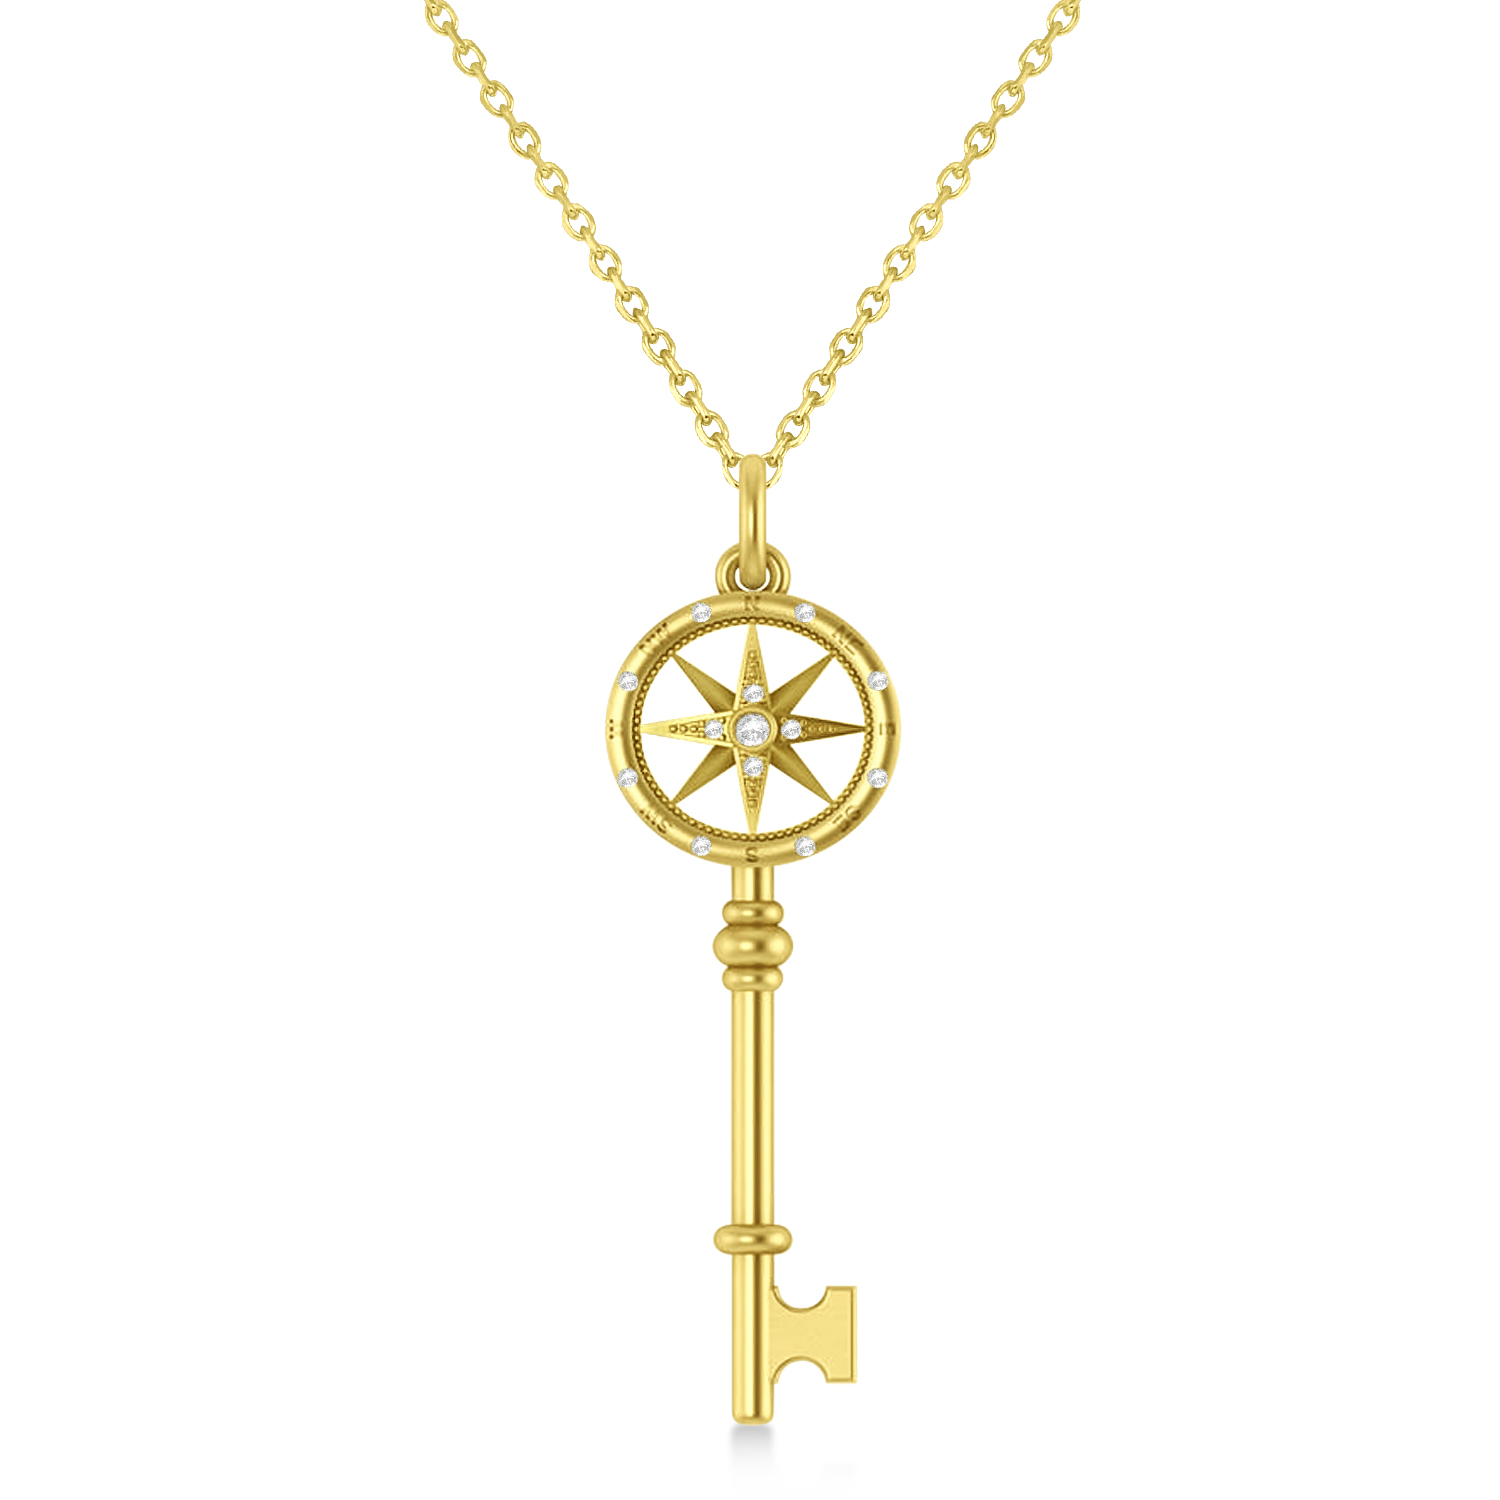 Diamond Compass Key Pendant 14k Yellow Gold (0.08 ctw)